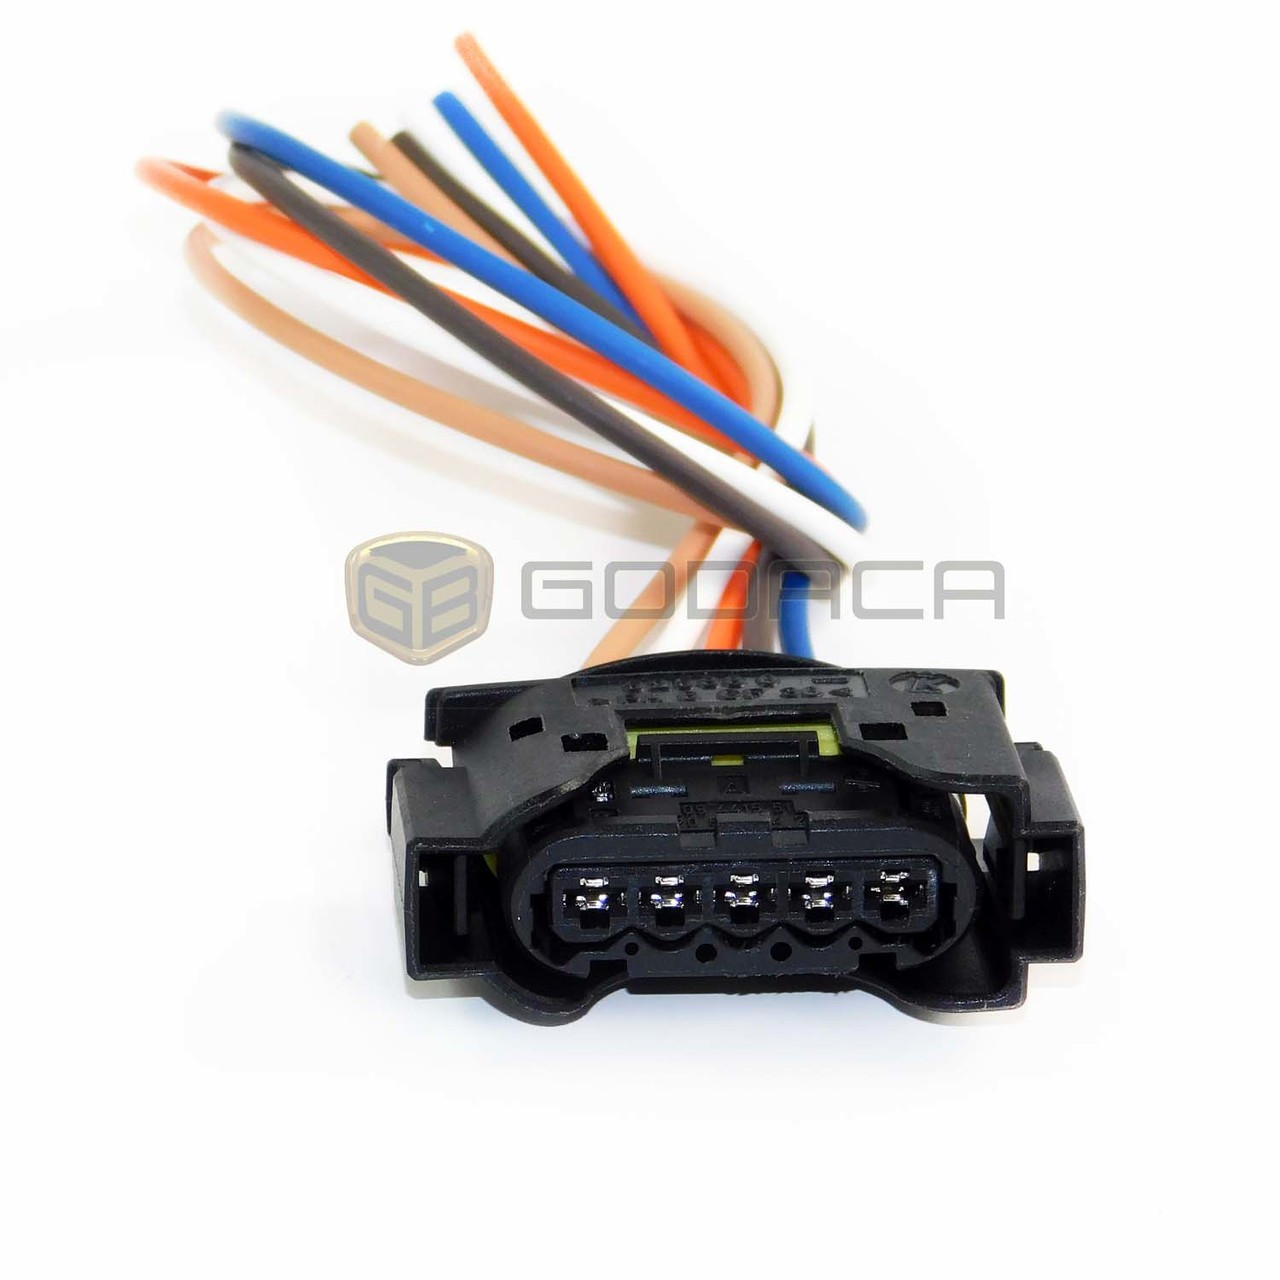 chrysler wiring pigtails auto wiring diagram today u2022 rh autodiagram today Types of Pigtailed Aluminum Wiring Automotive Wiring Connectors Assortment